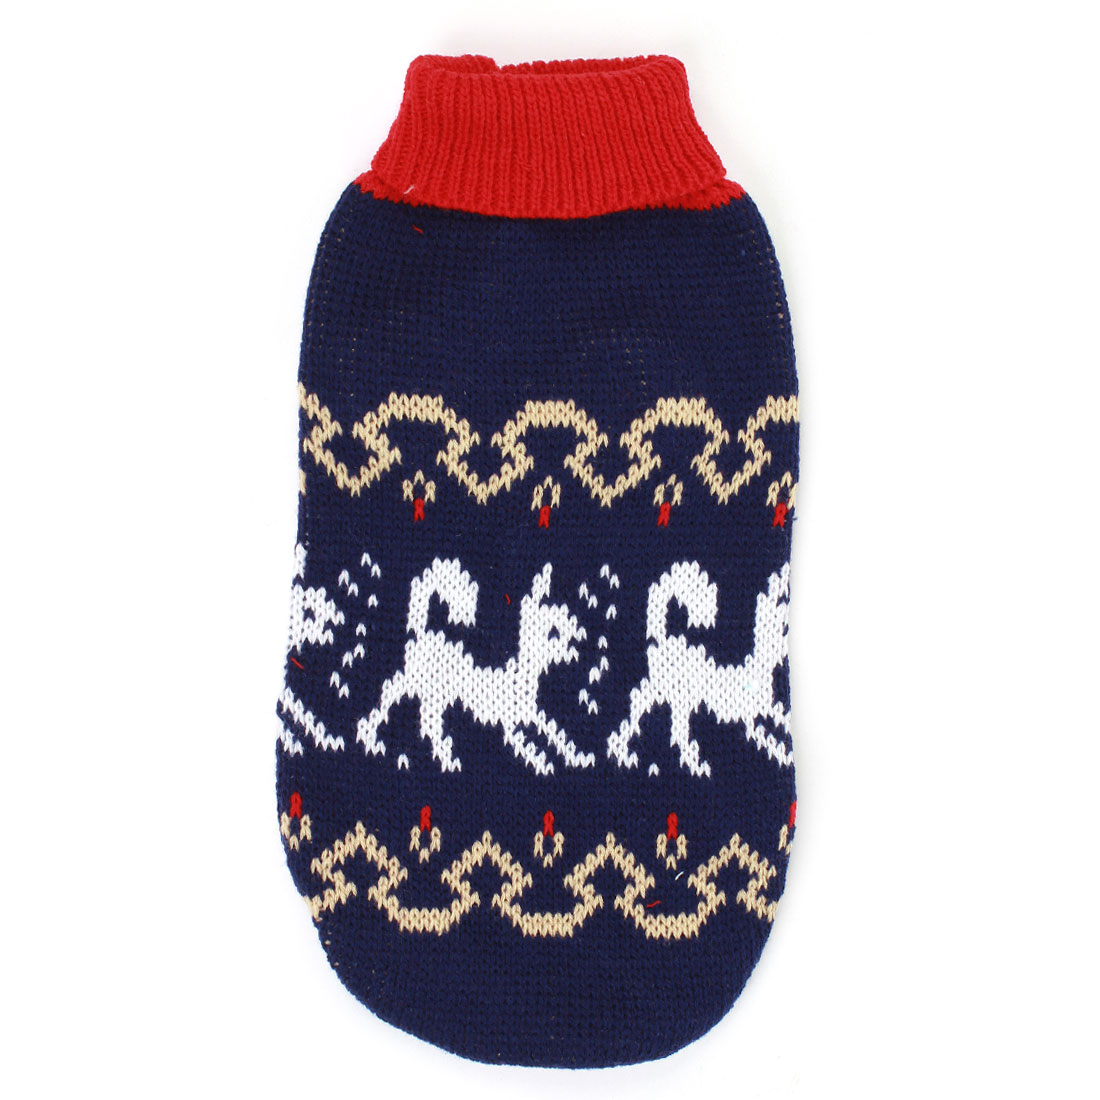 Pet Dog Puppy Ribbed Cuff Knitwear Turtleneck Apparel Sweater Colorful Size S